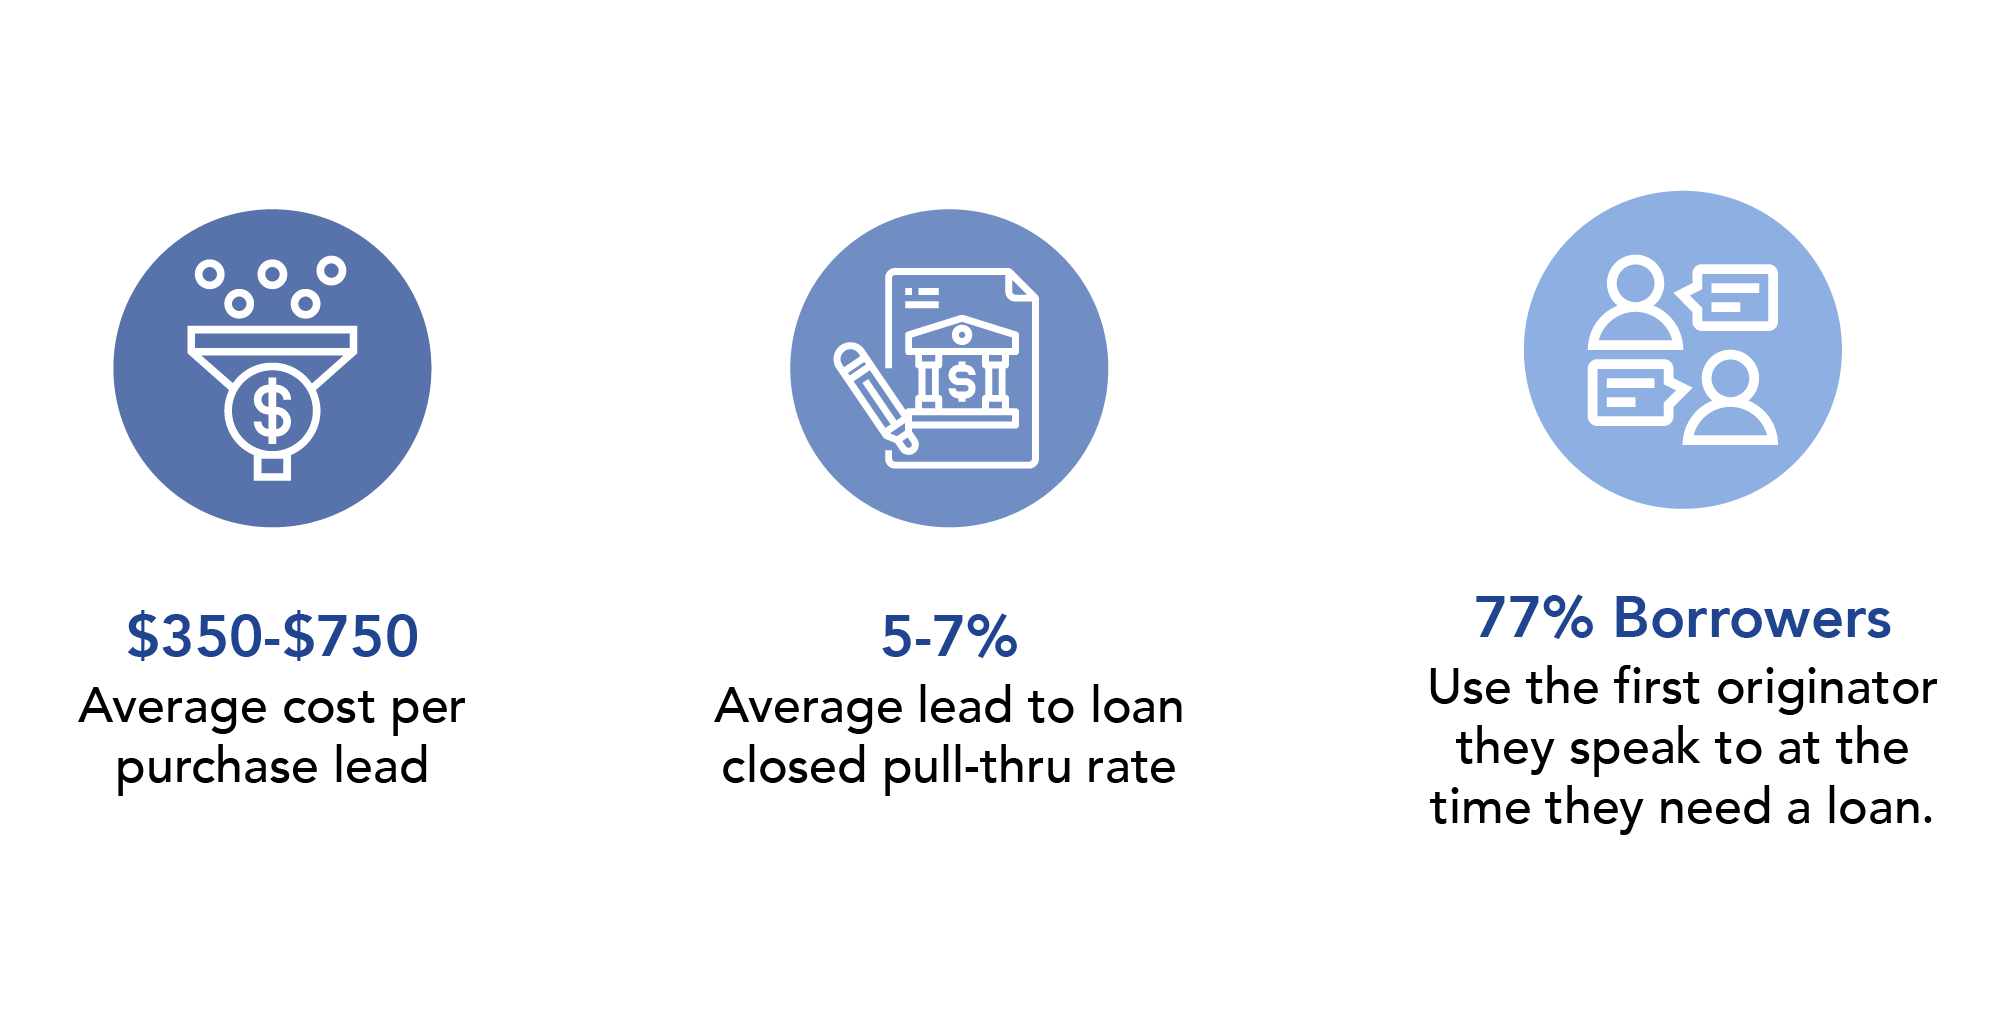 Lenders spend an average of $350 to $750 per purchased lead. The average lead to loan closed pull-thru rate is 5-7%. 77% of borrowers move forward with the first originator they speak to at the time they need a loan